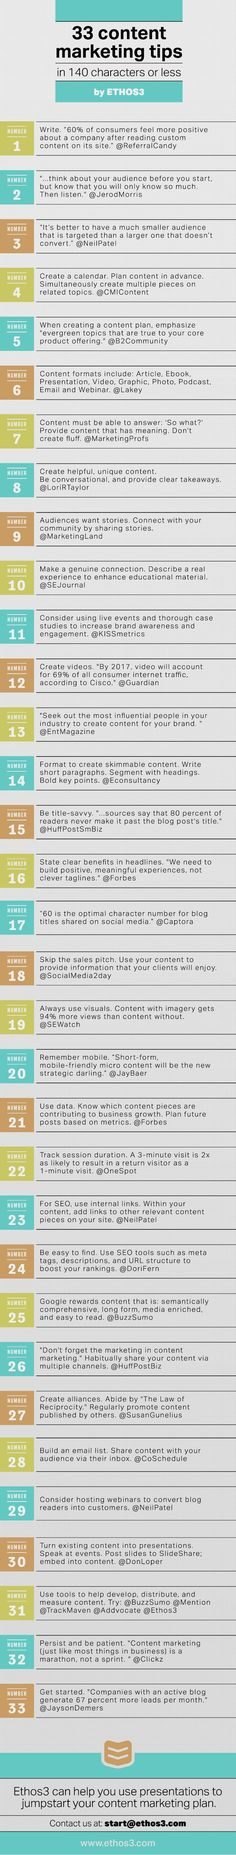 does-your-content-marketing-strategy-suck-here_s-33-tips-for-success.jpg (638×5017)